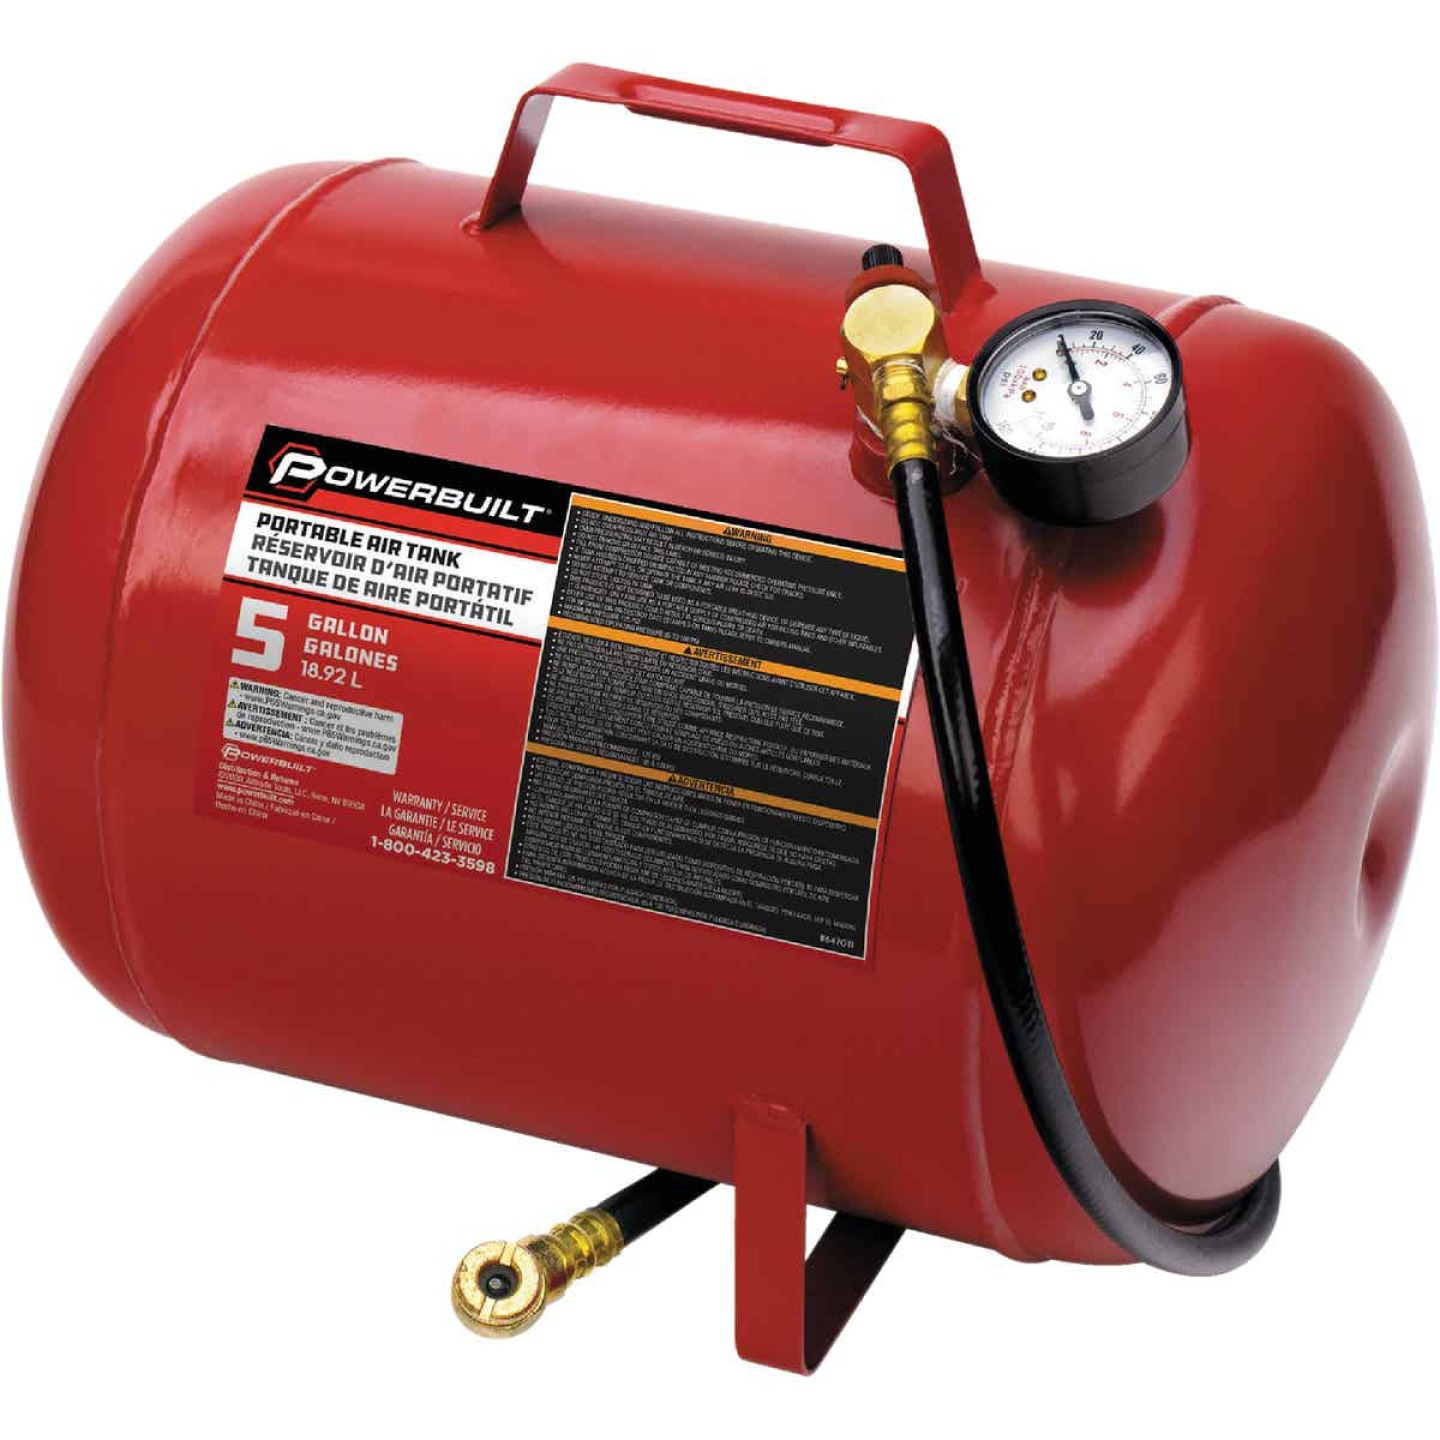 Pro-Lift Air Tank, 5 Gallon Image 1